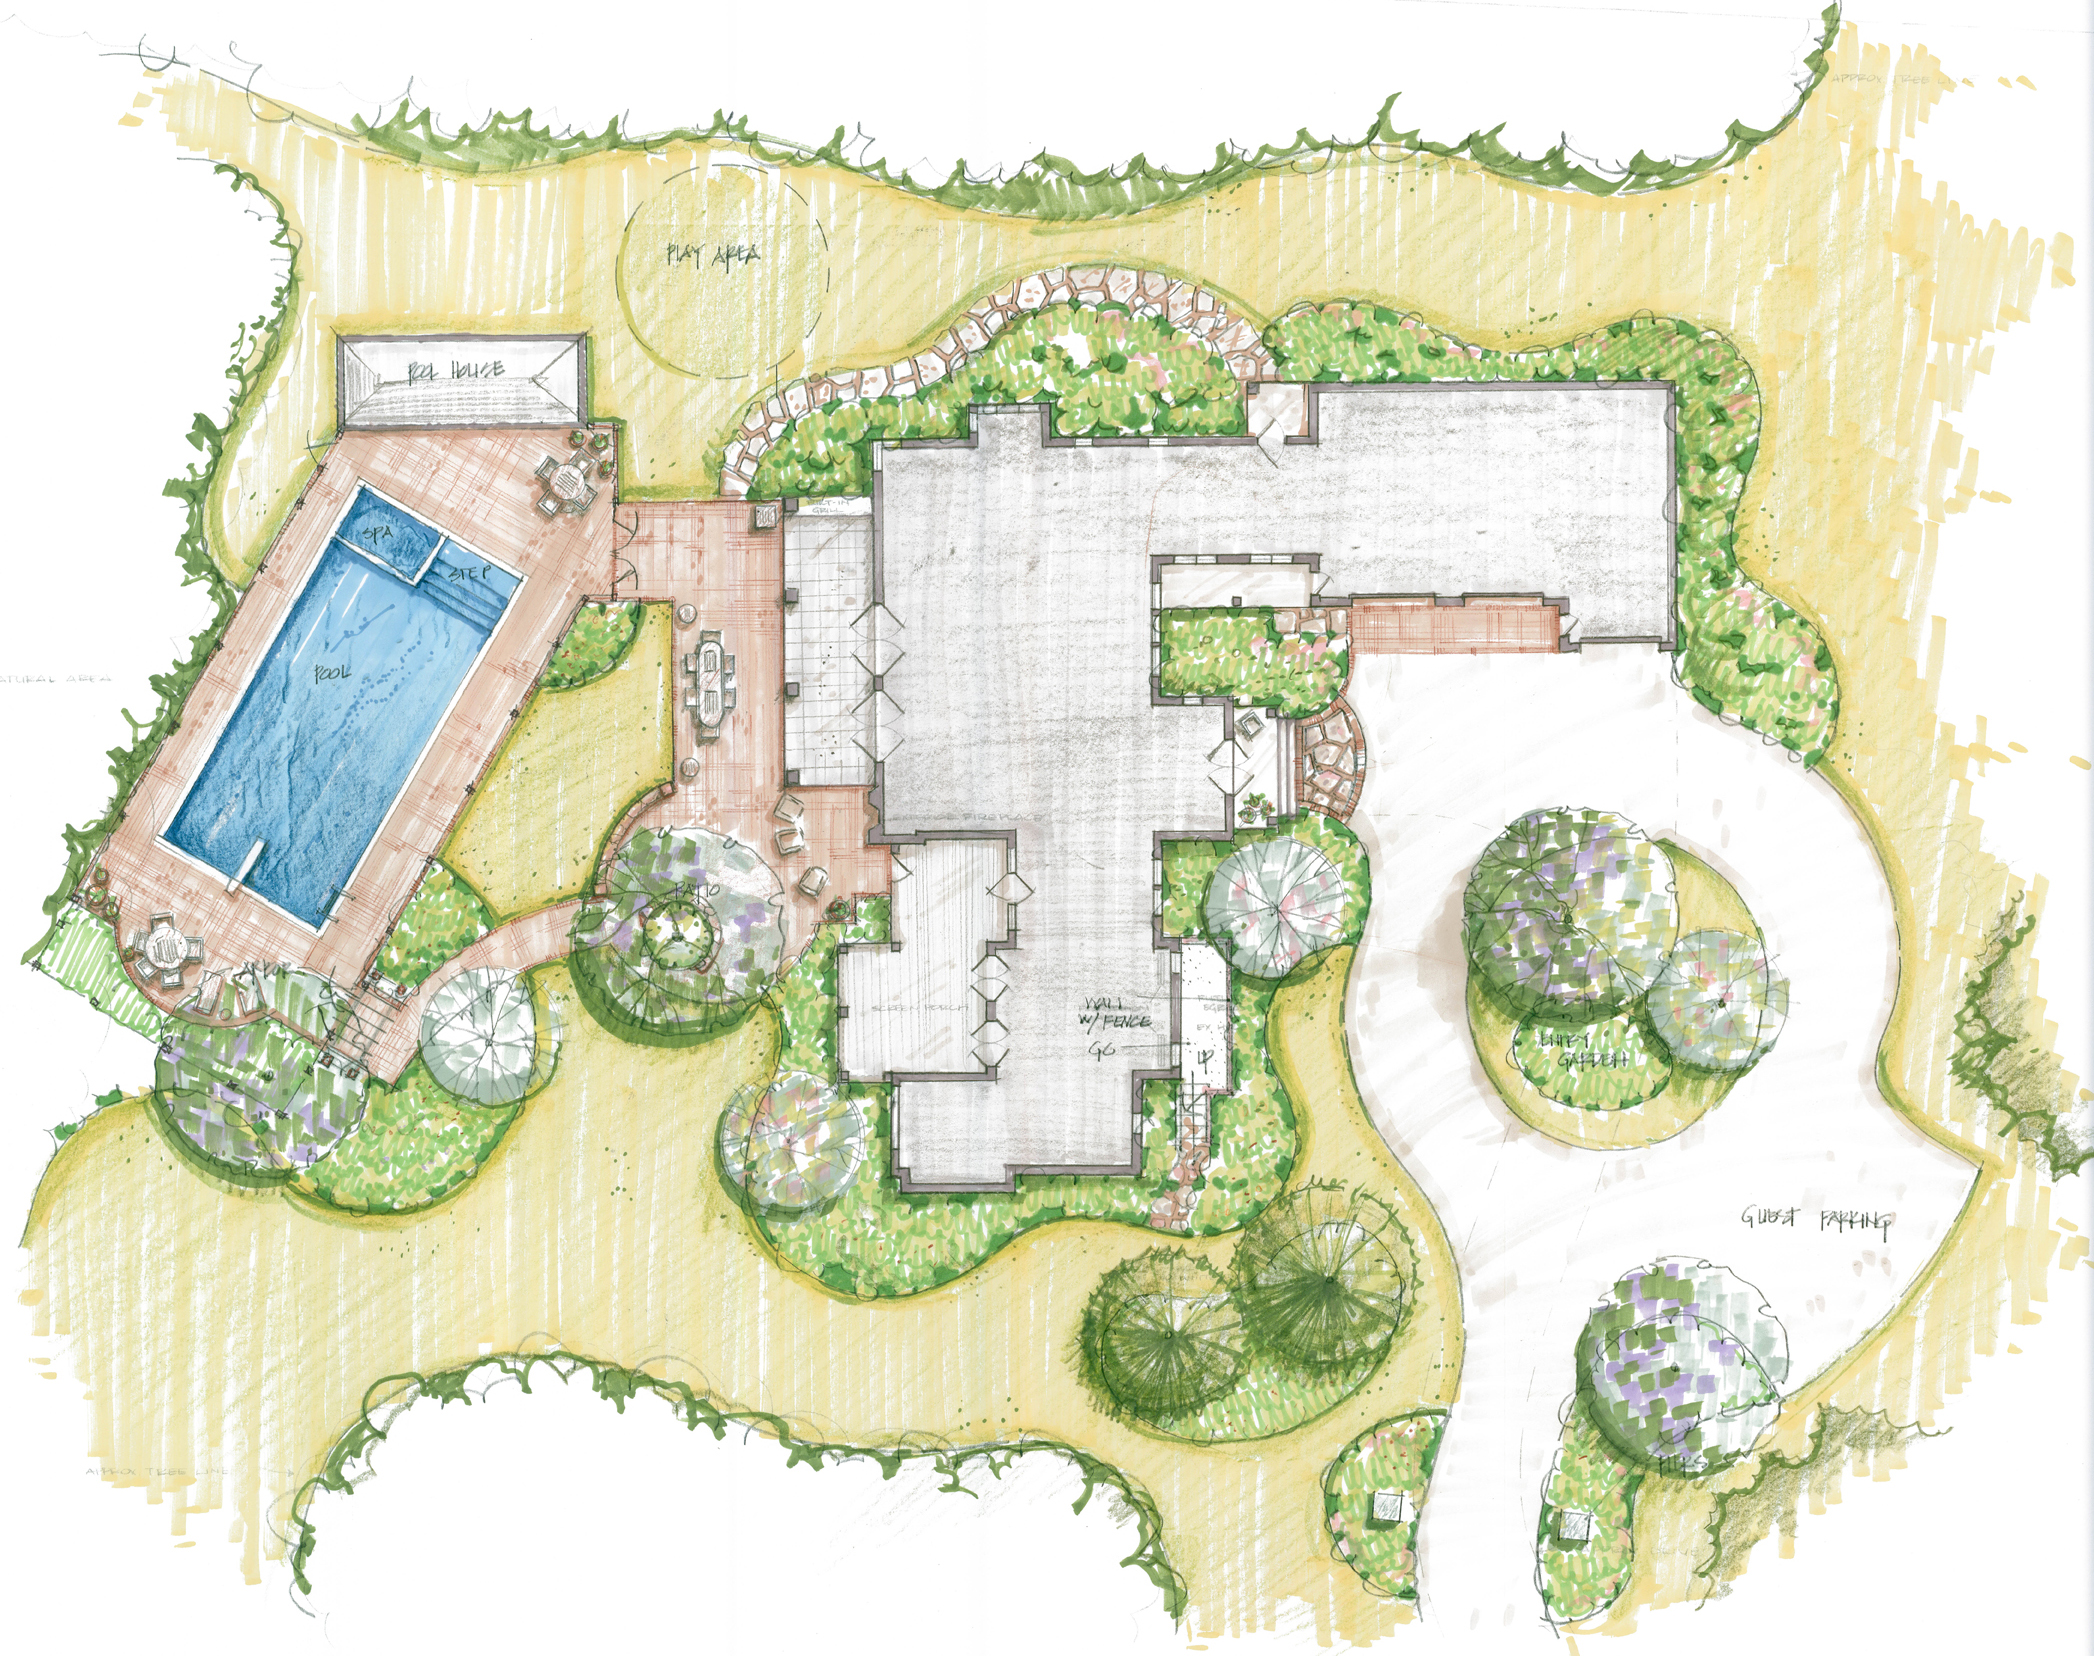 5 simple reasons to plan your landscape design landscape for Easy landscape design